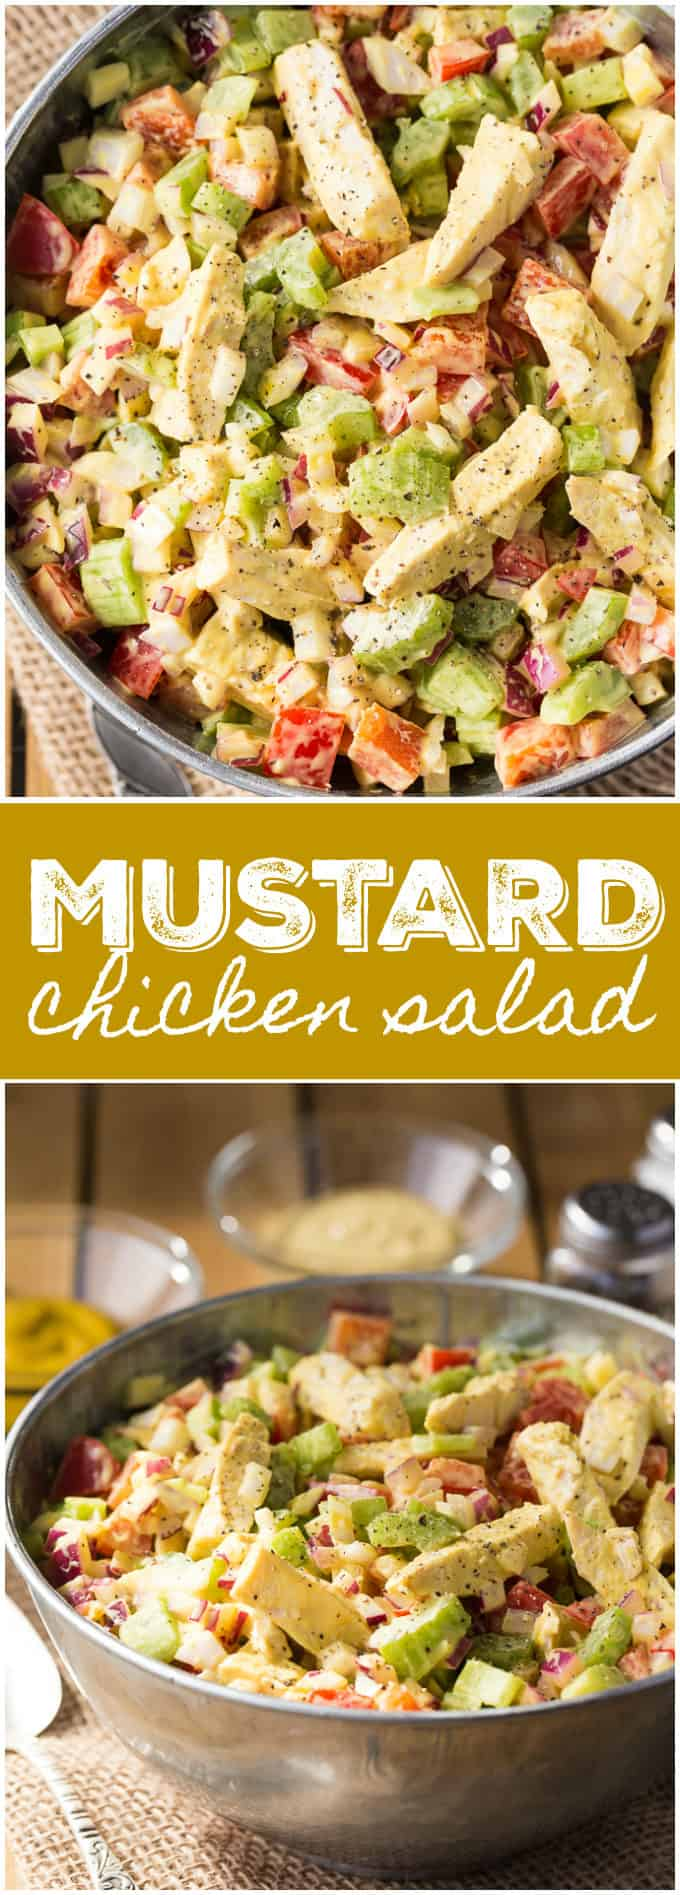 Mustard Chicken Salad Recipe - Packed full of yum! This small-batch chicken salad has yellow and Dijon mustard plus a little ranch dressing for the most flavorful lunch ever.